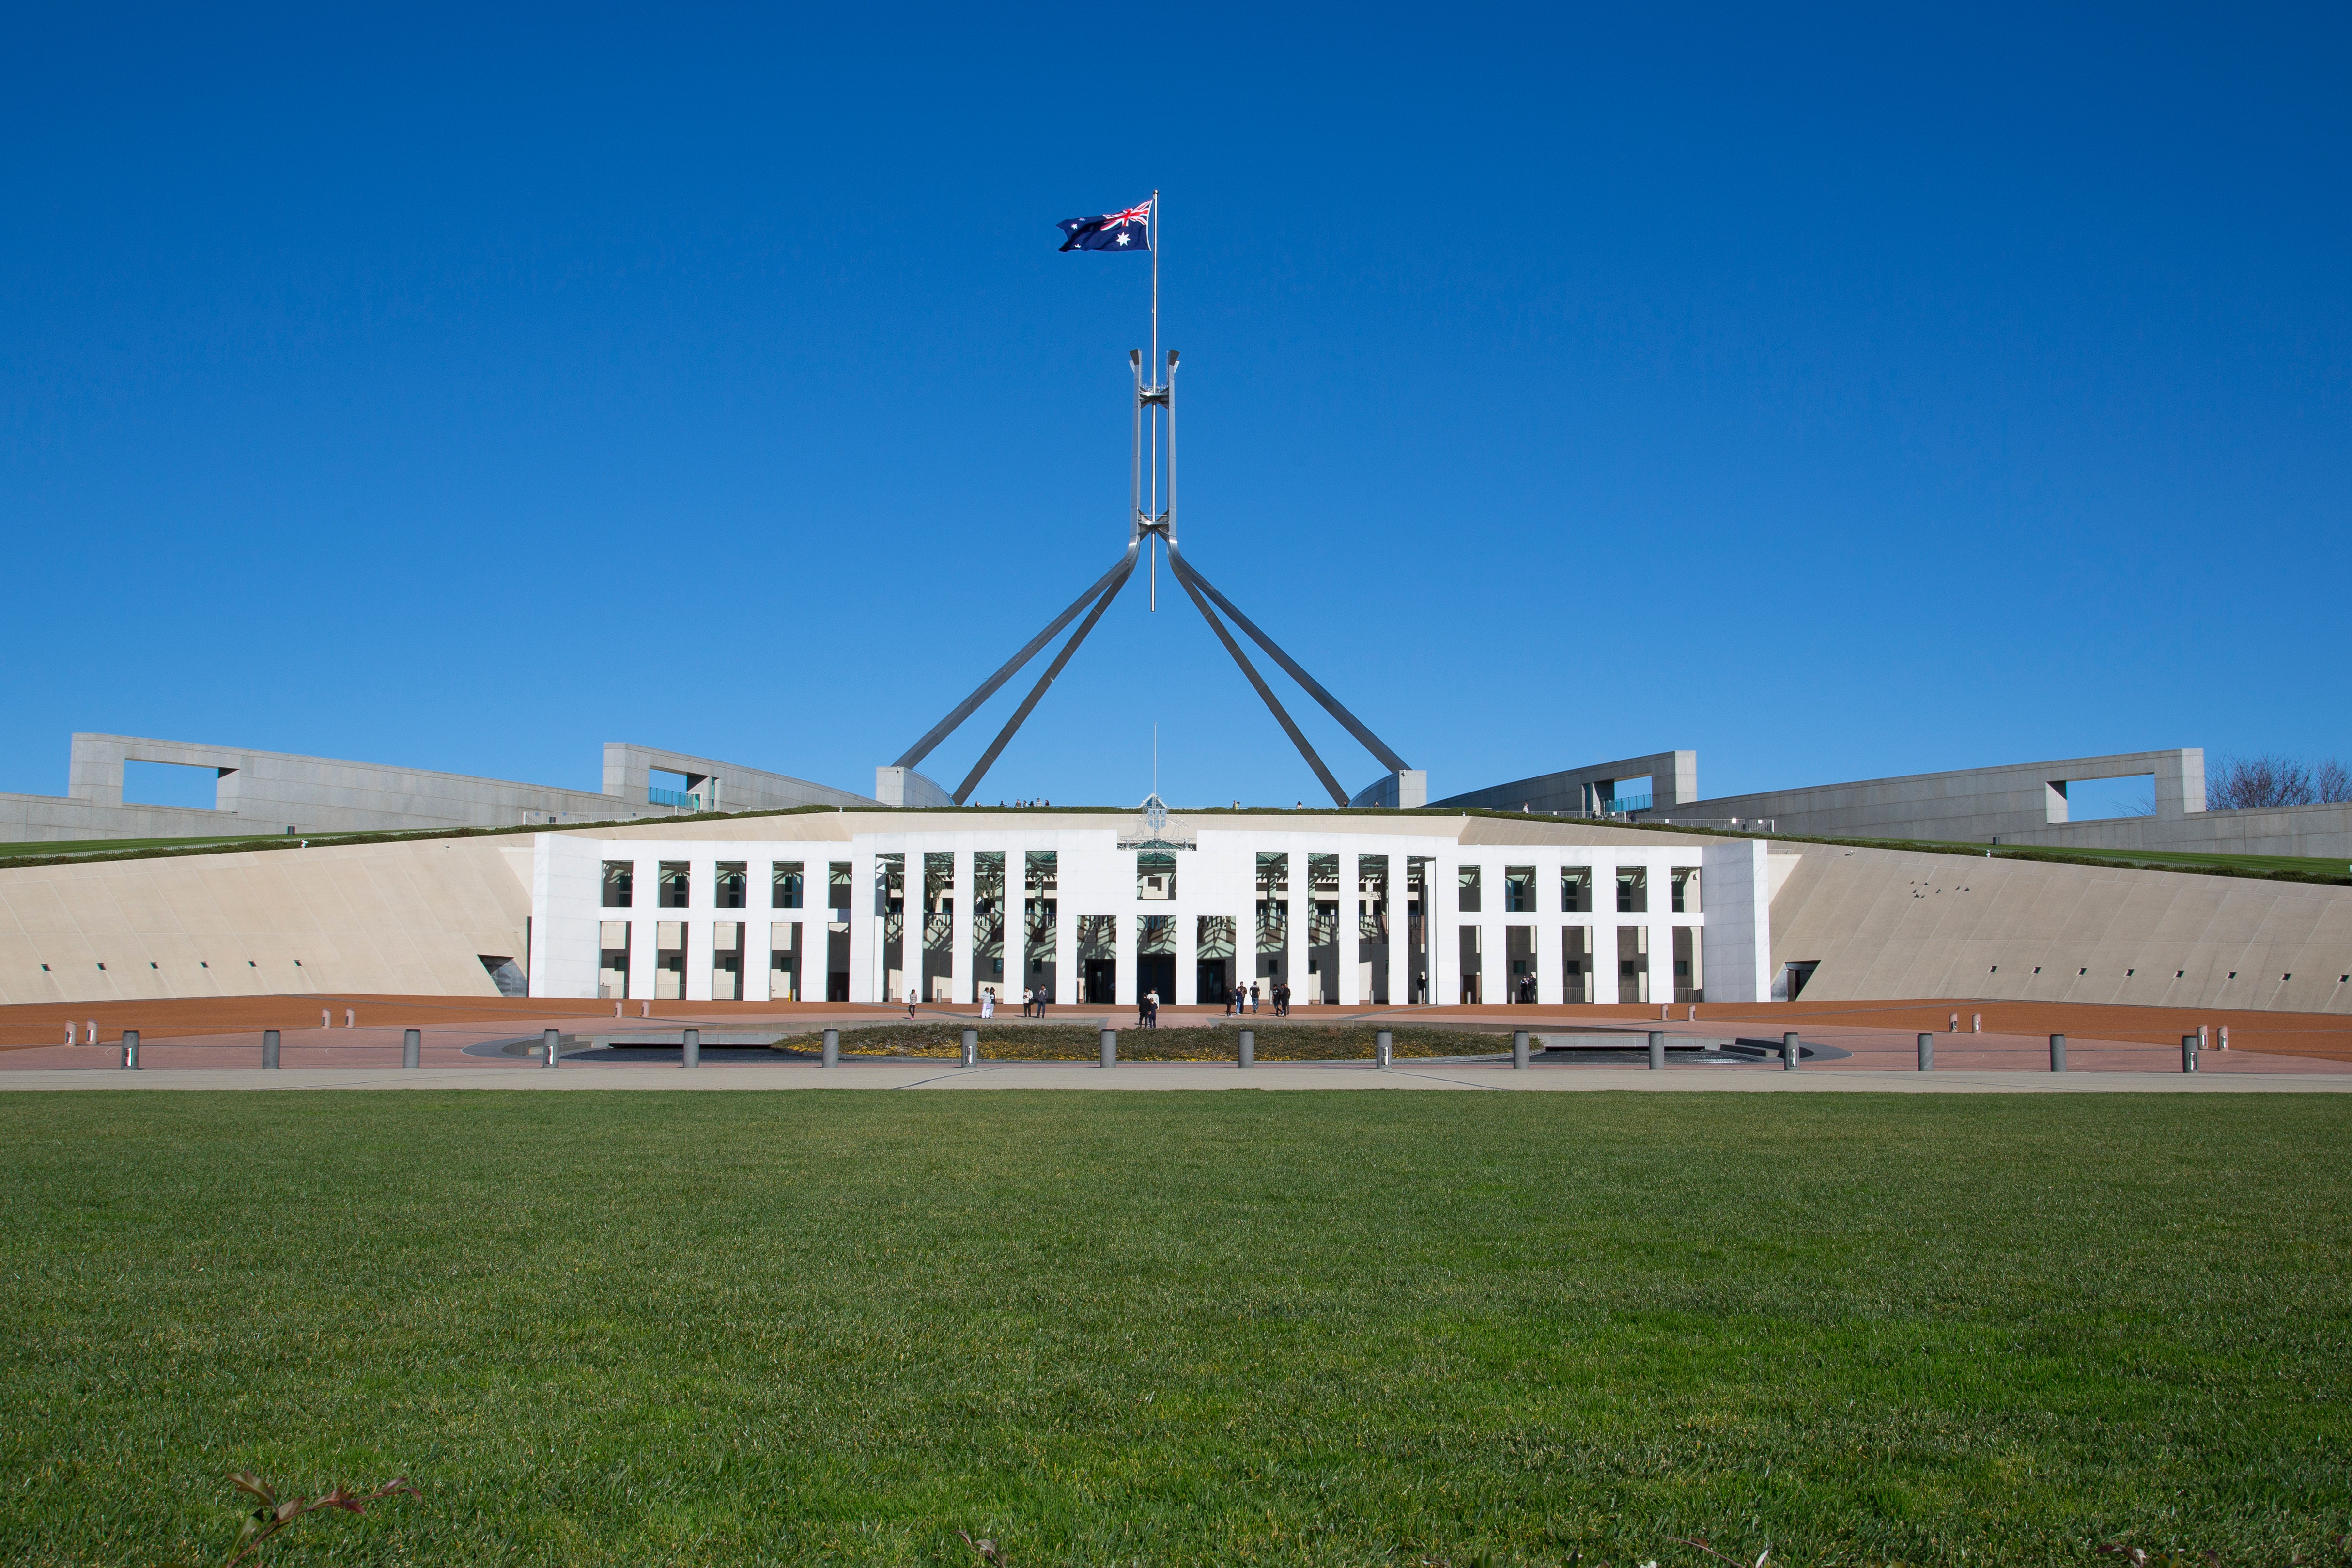 Free stock photo of Parliament House Canberra Australia